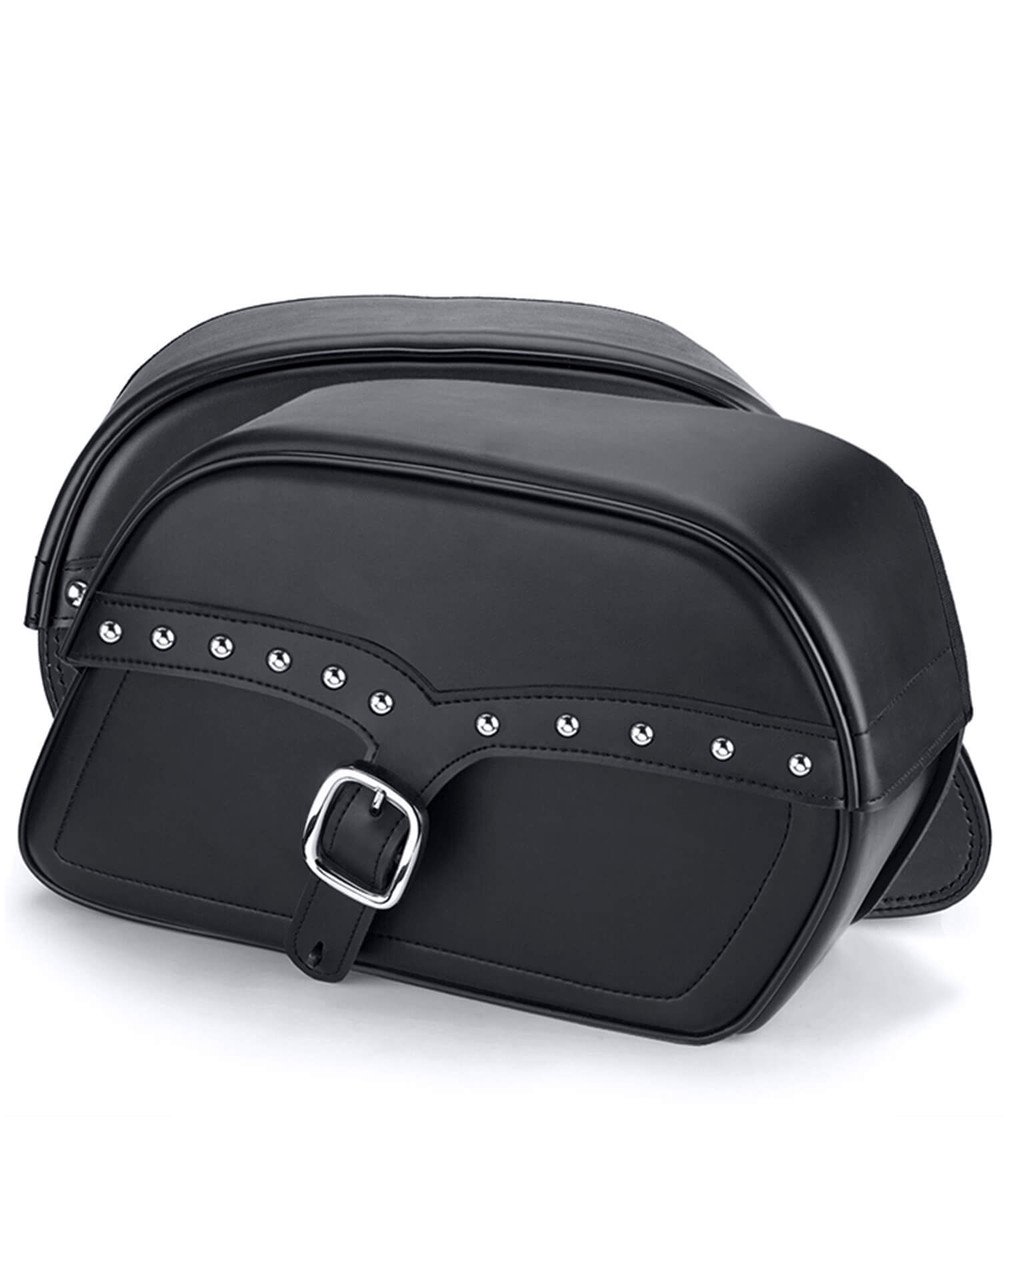 Indian Chief Standard Medium Studded Single Strap Motorcycle Saddlebags Both Bags View